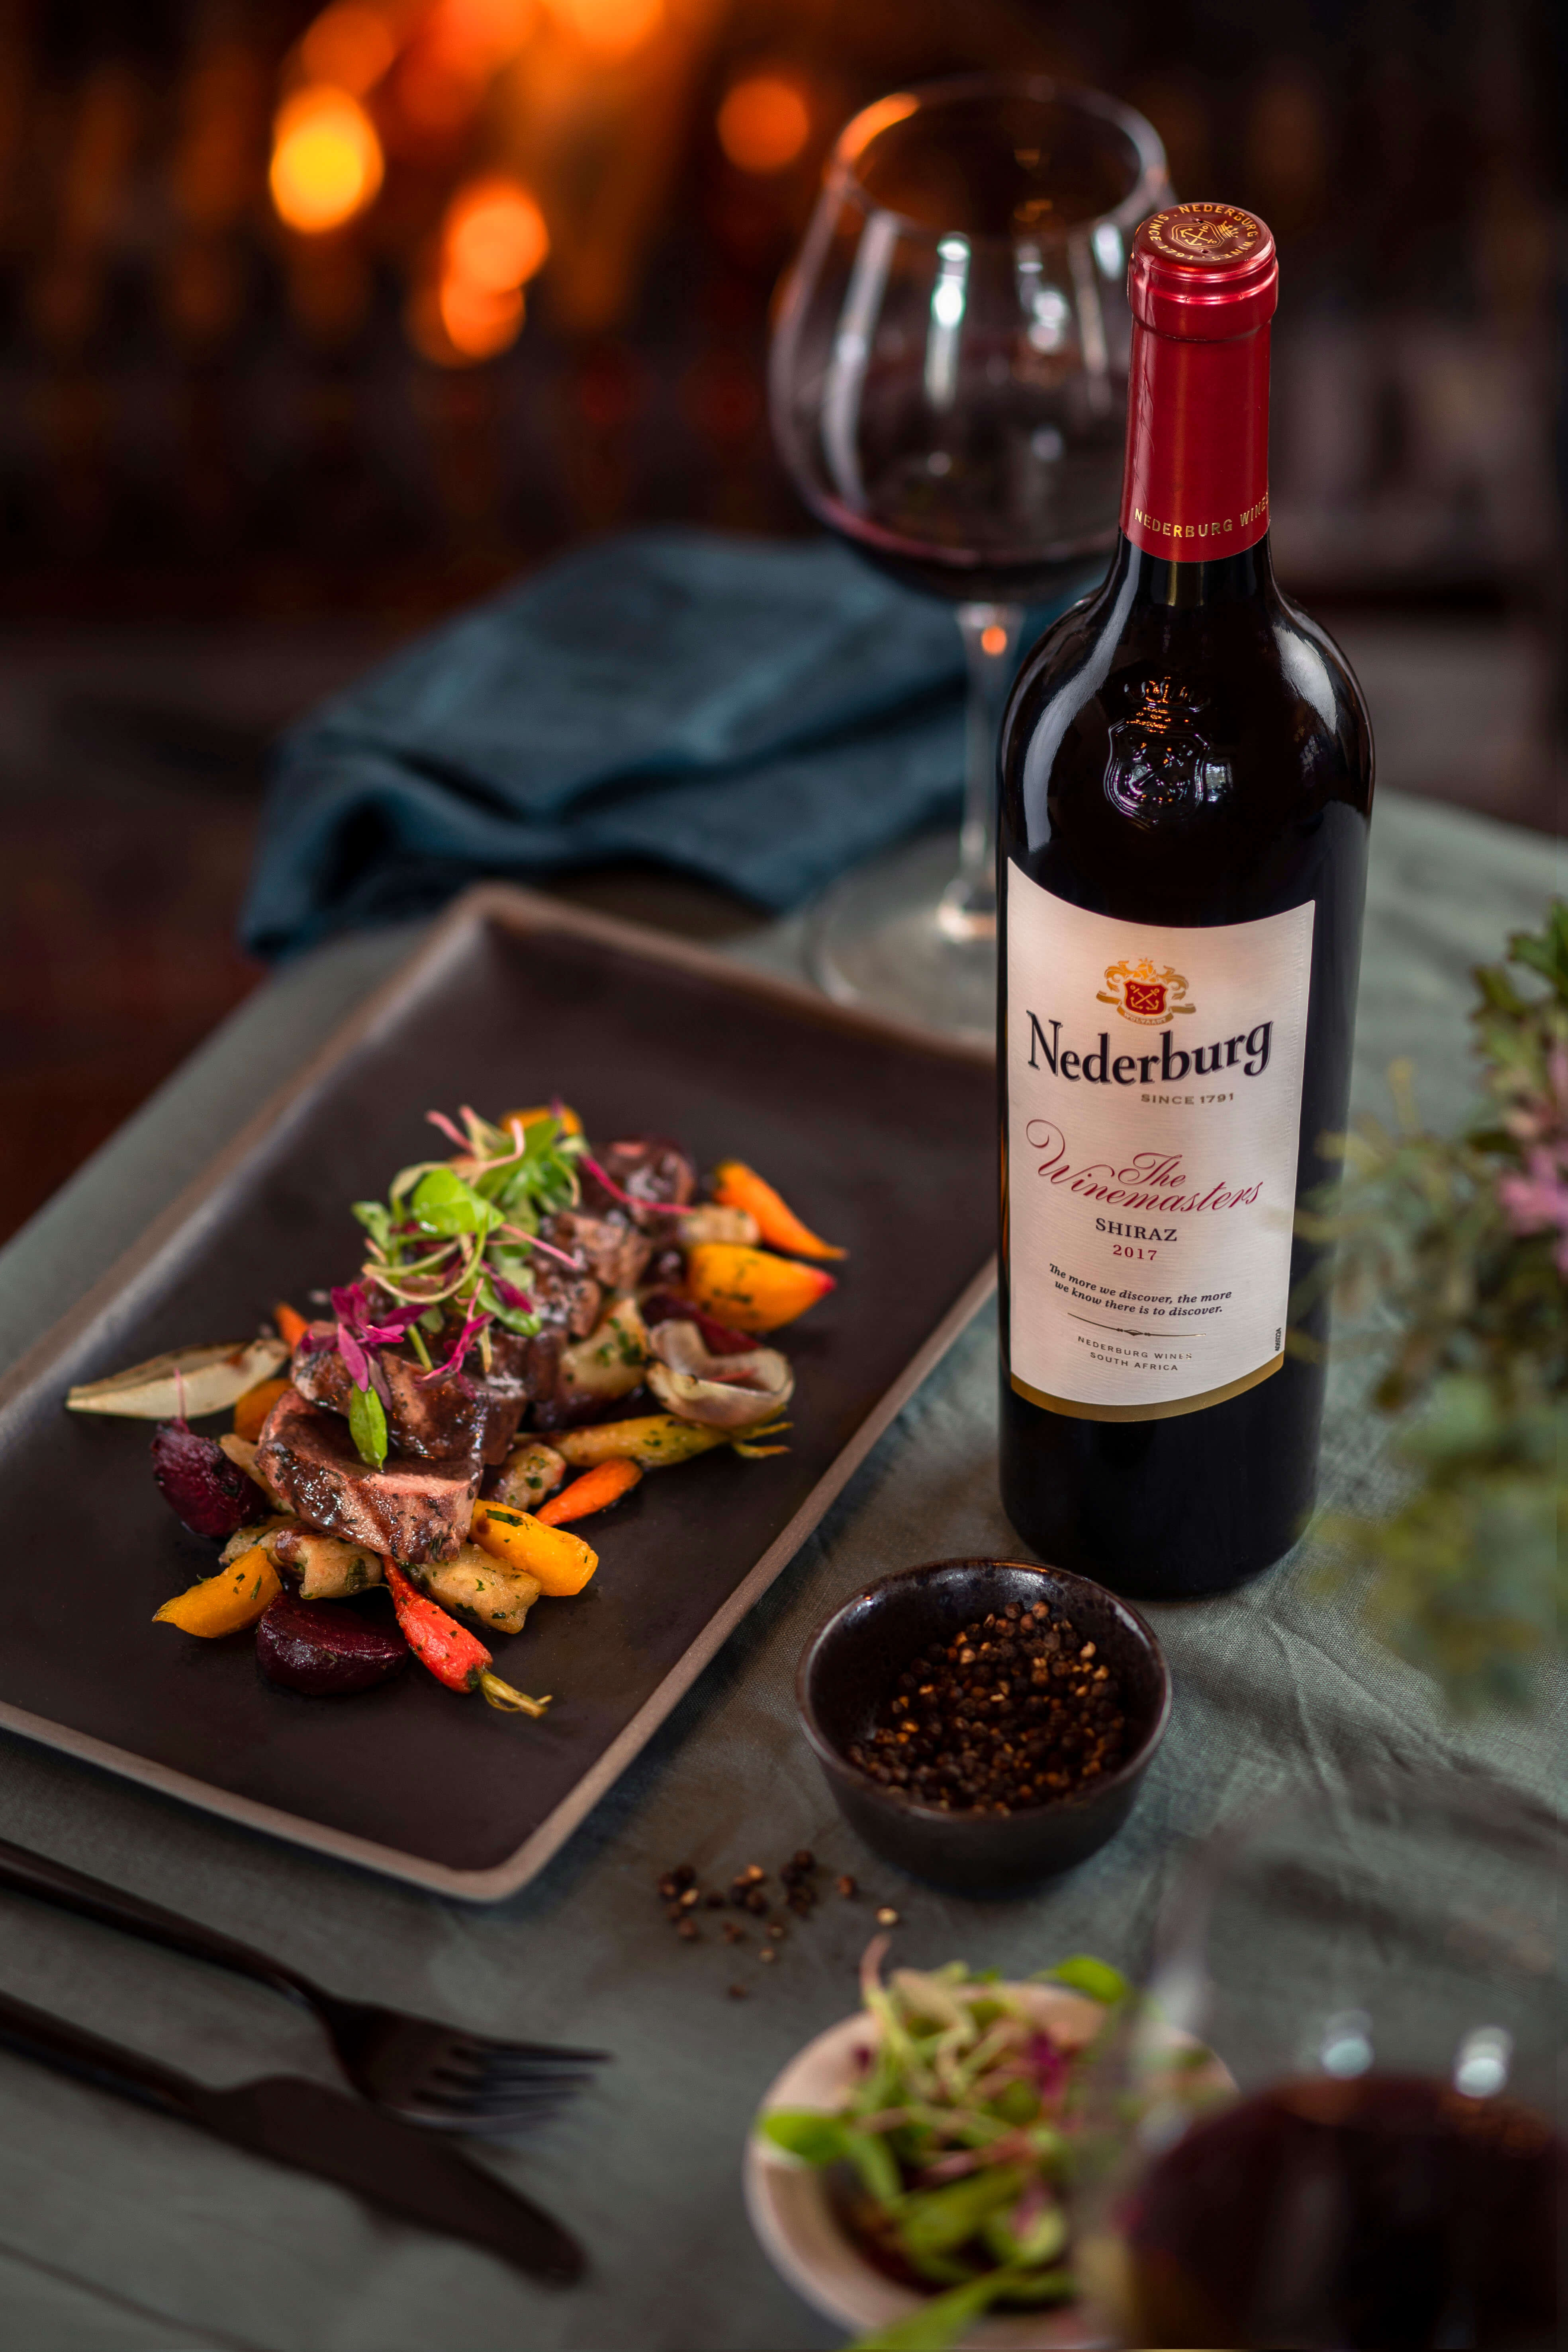 A BOUNTY OF SHIRAZ & VENISON AT NEDERBURG carousel image 3